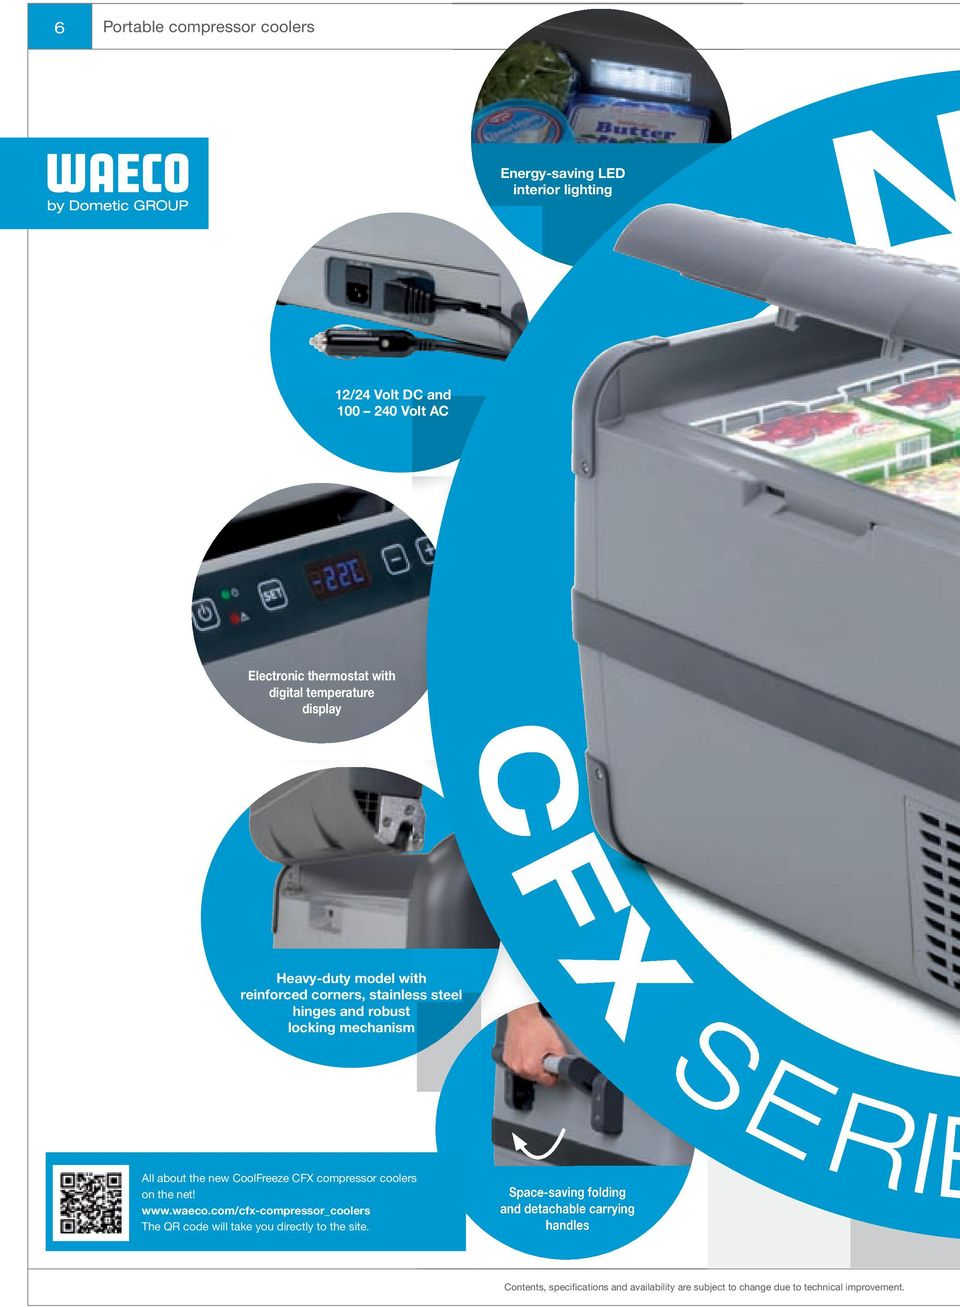 All about the new CoolFreeze CFX compressor coolers on the net! www.waeco.